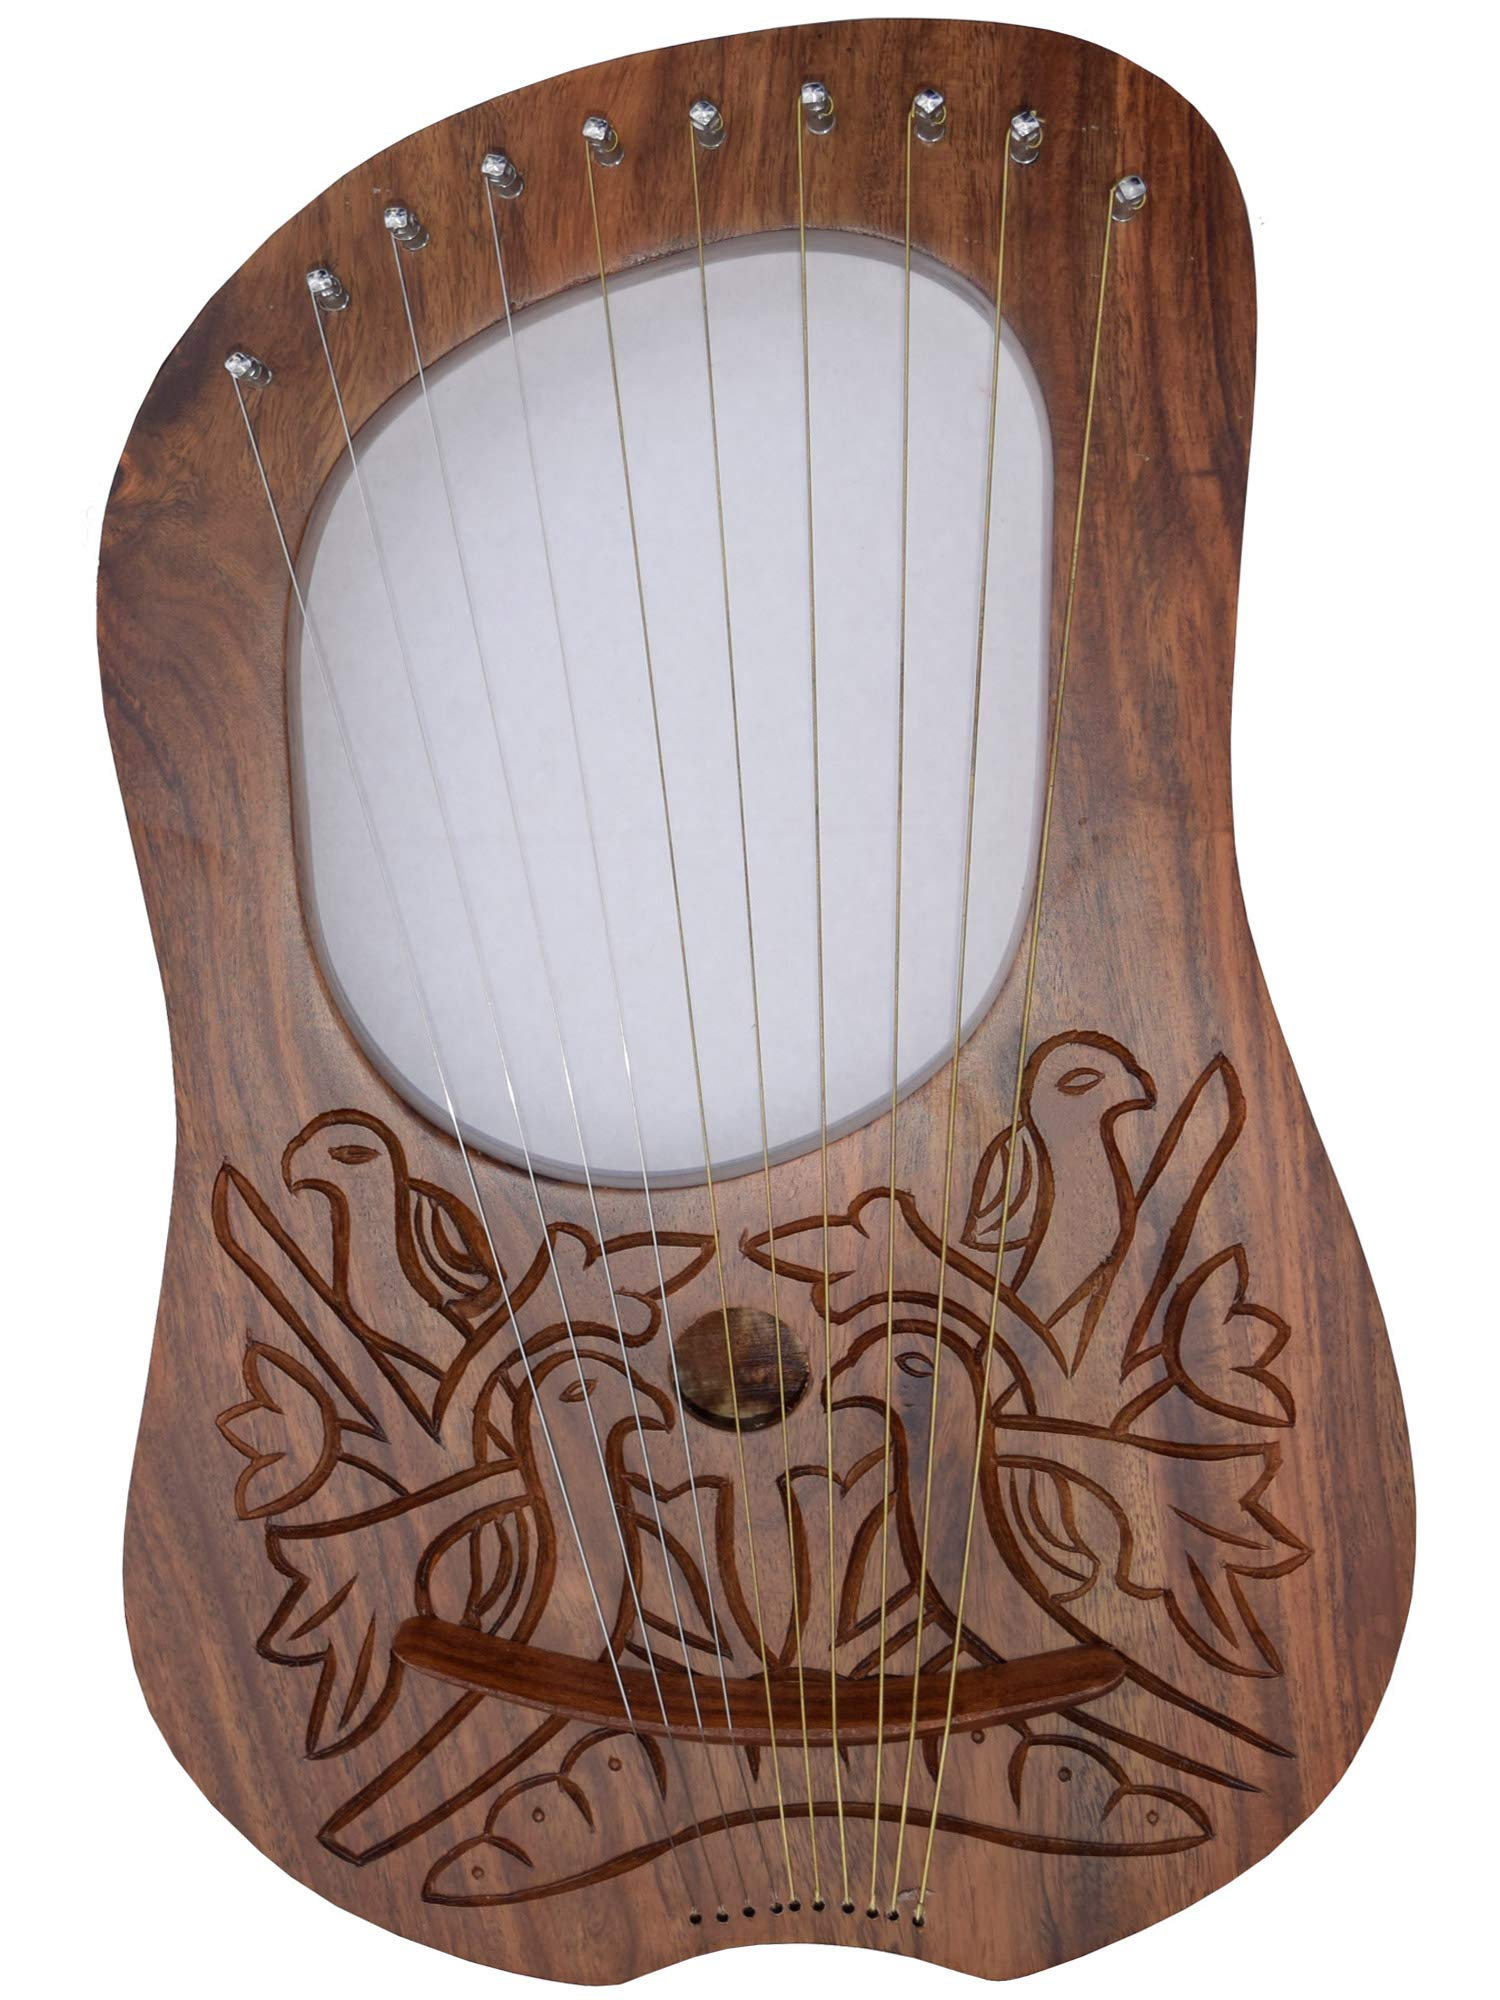 B New AAR Lyre Harp 4 Birds Rosewood 10 Strings Hand Engraved/Lyra Harp Rose Wood/Harfe With Carrying Case & Tuning Key